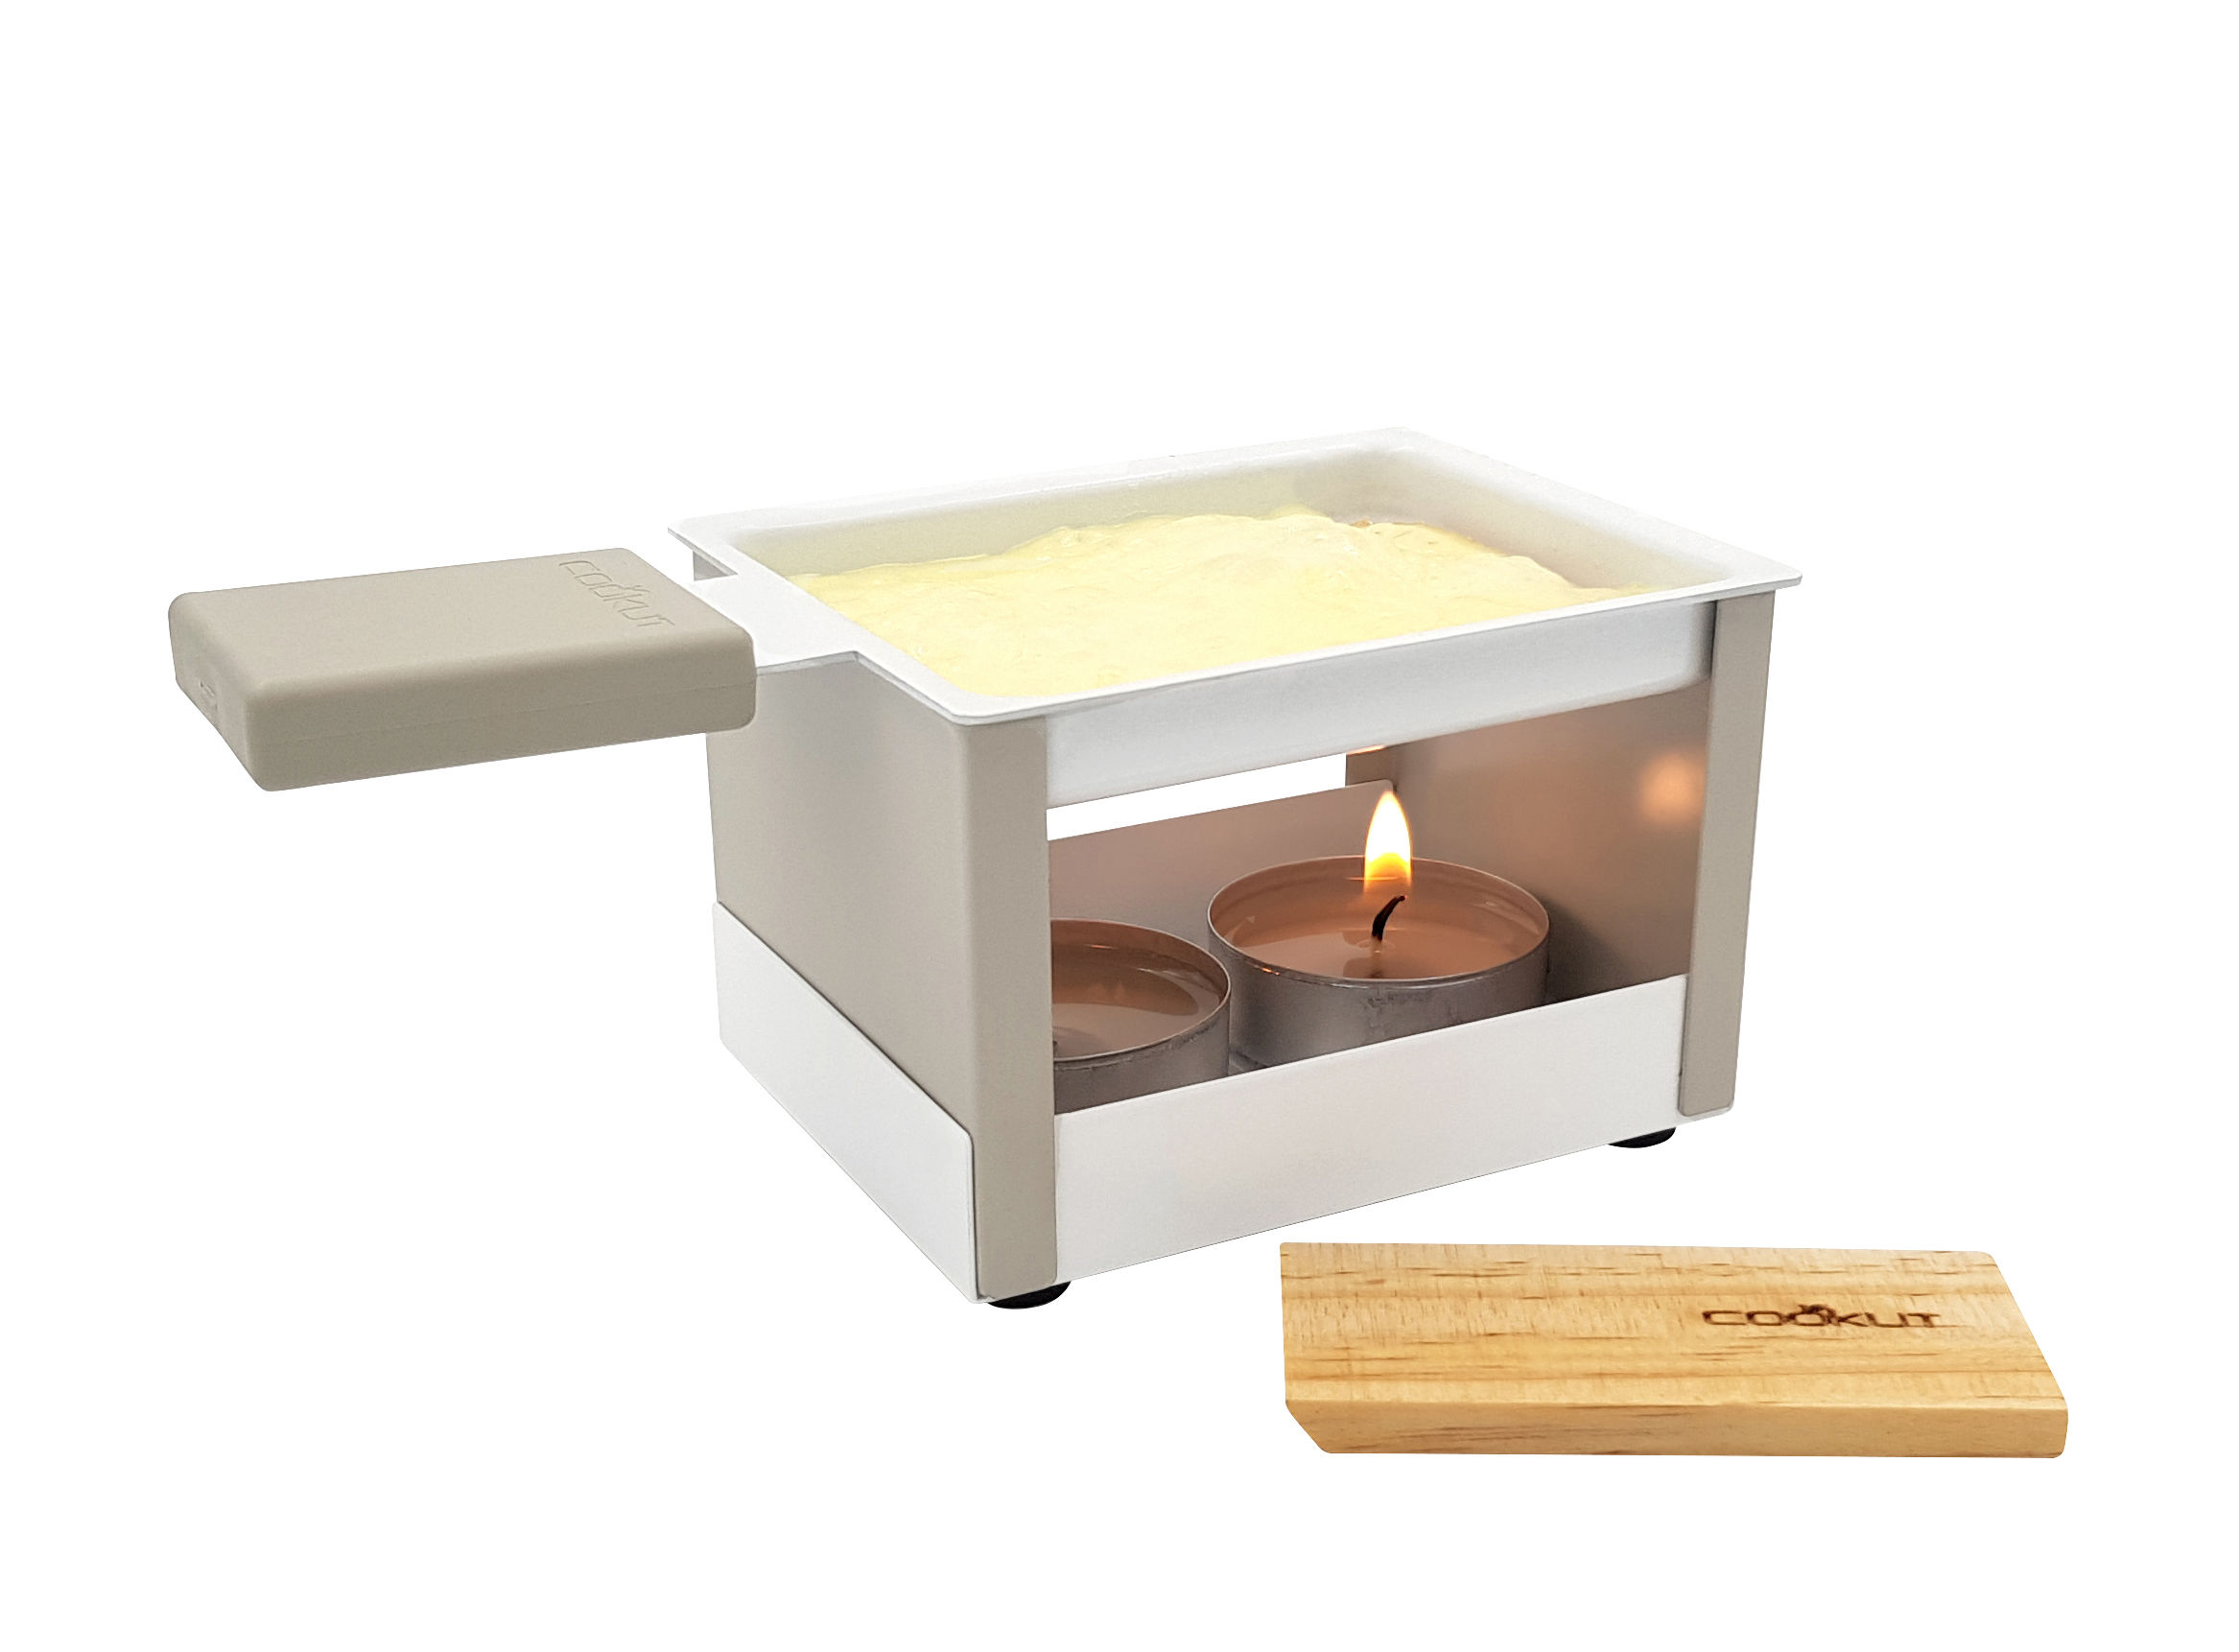 Kitchenware - Kitchen Equipment - Yeti Set - / For Raclette by candlelight - 1 person by Cookut - Grey - Acier revêtu anti-adhérent, Nylon, Wood